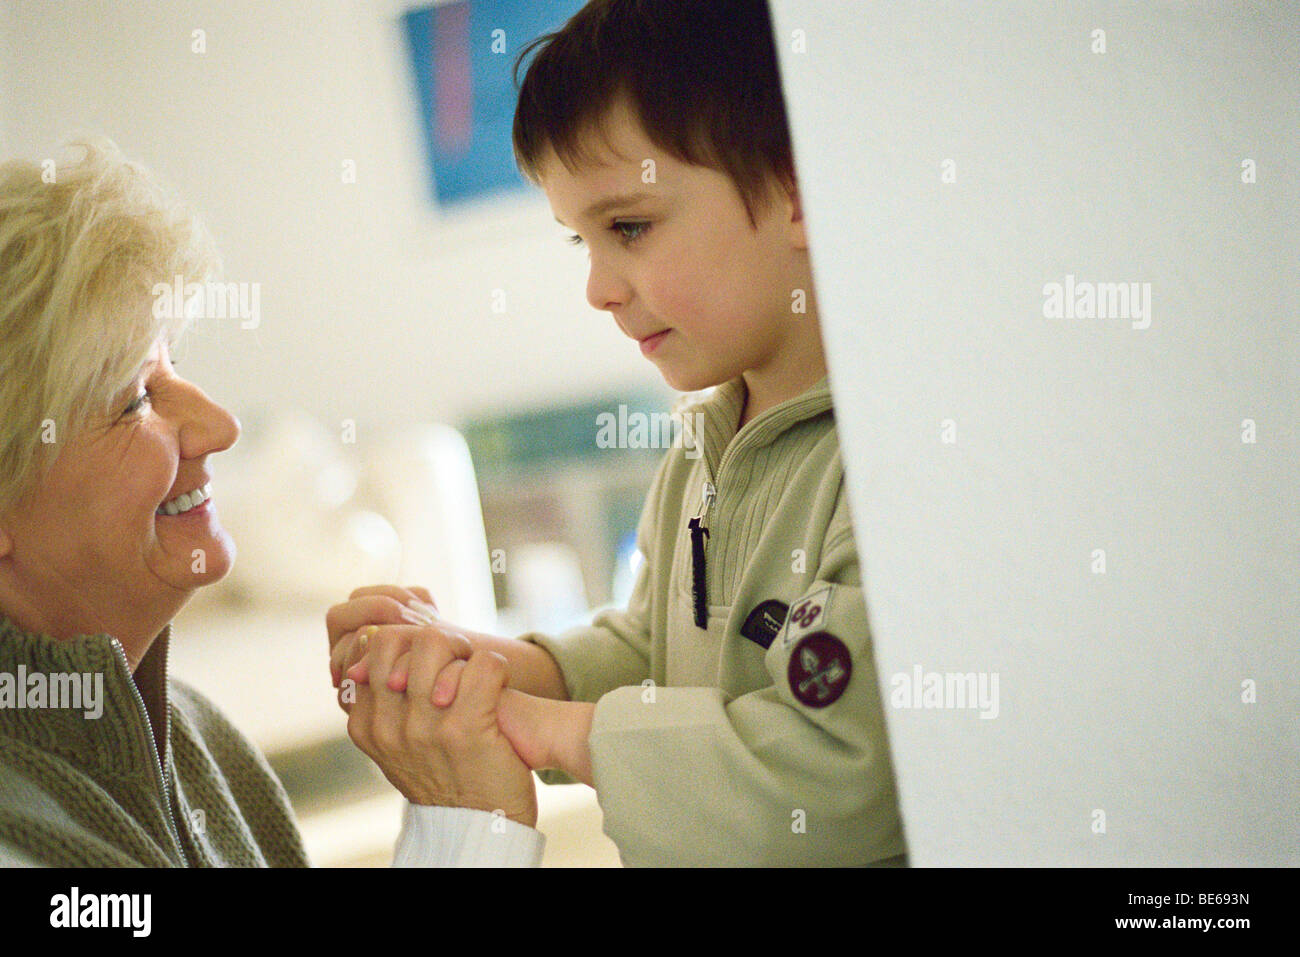 Little boy face to face with grandmother, holding hands - Stock Image